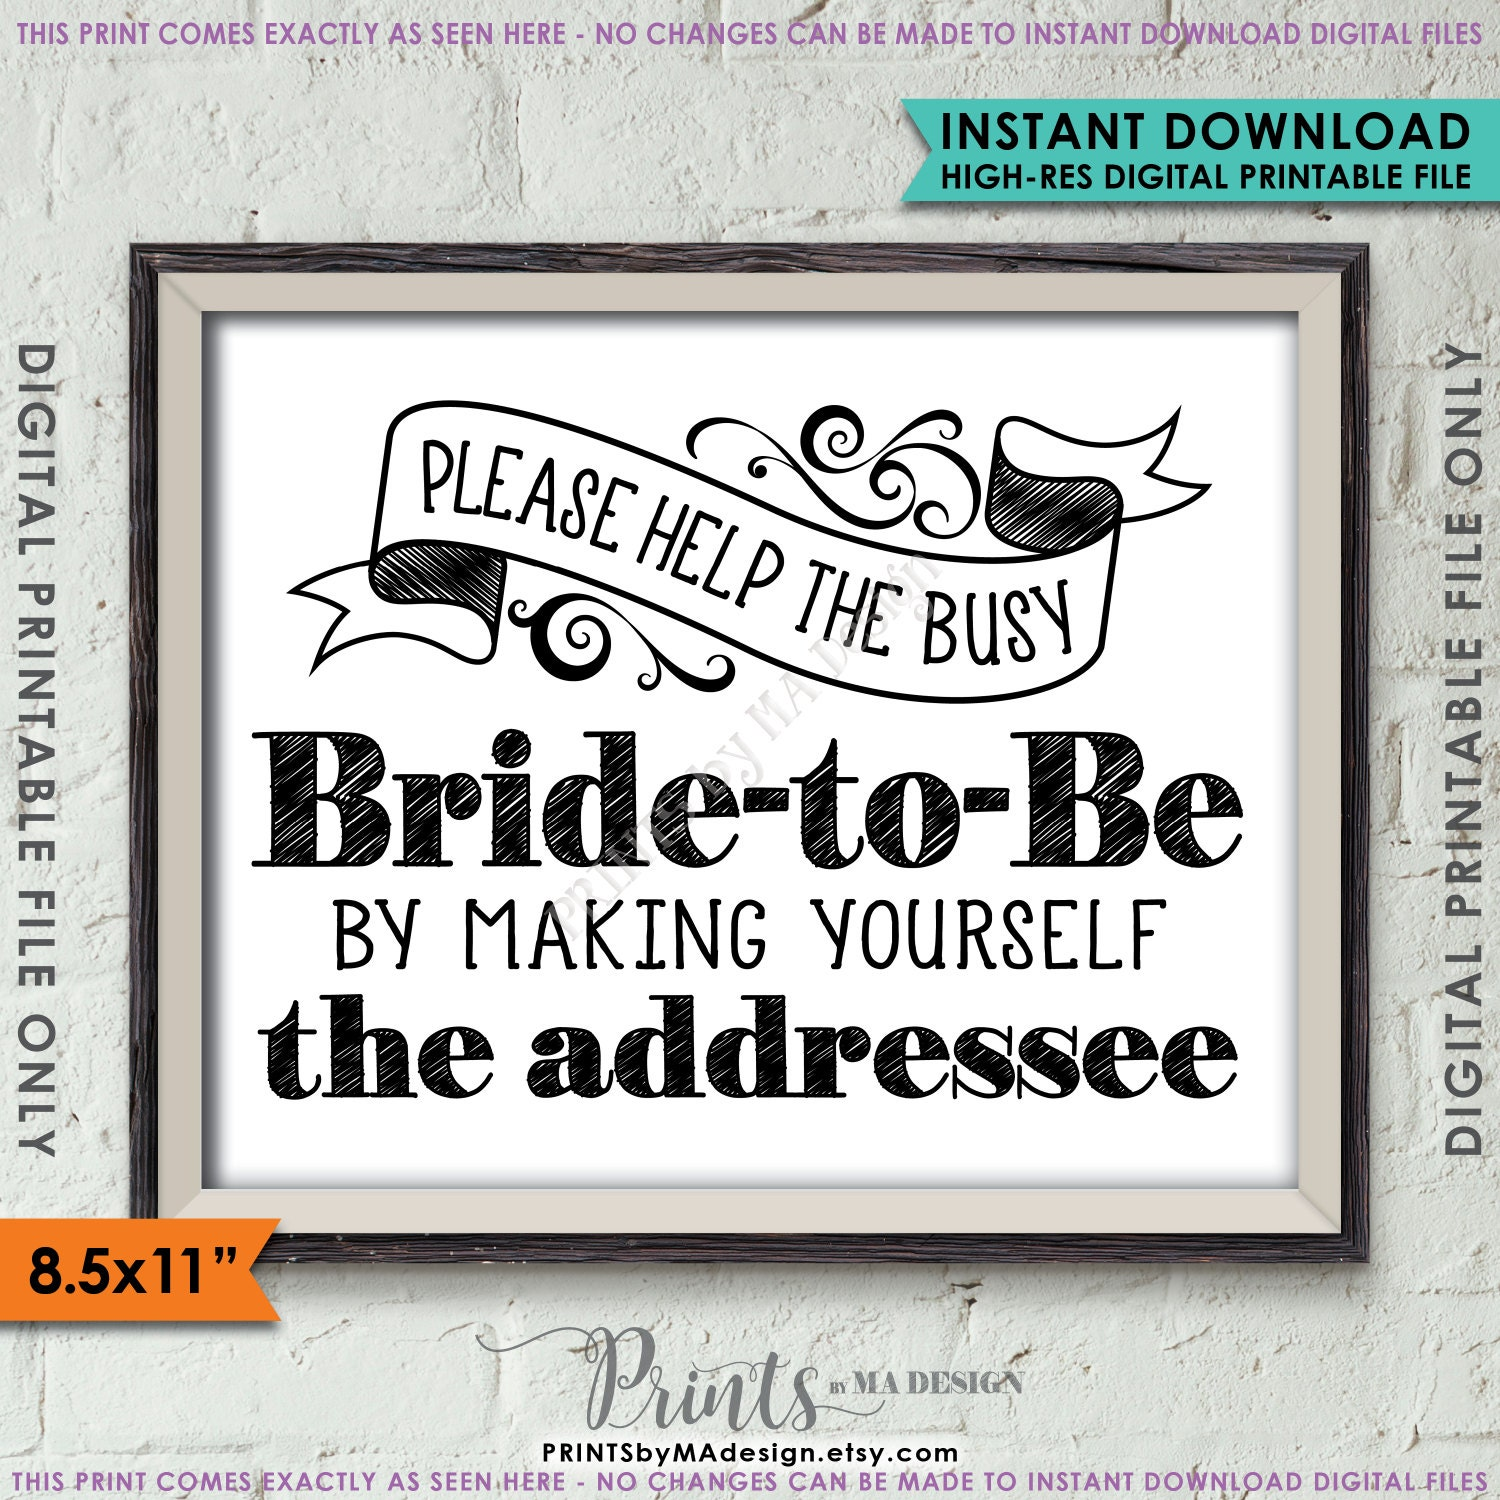 Address envelope bridal shower sign help the bride by addressing an address envelope bridal shower sign help the bride by addressing an envelope addresee black white 85x11 instant download printable altavistaventures Choice Image